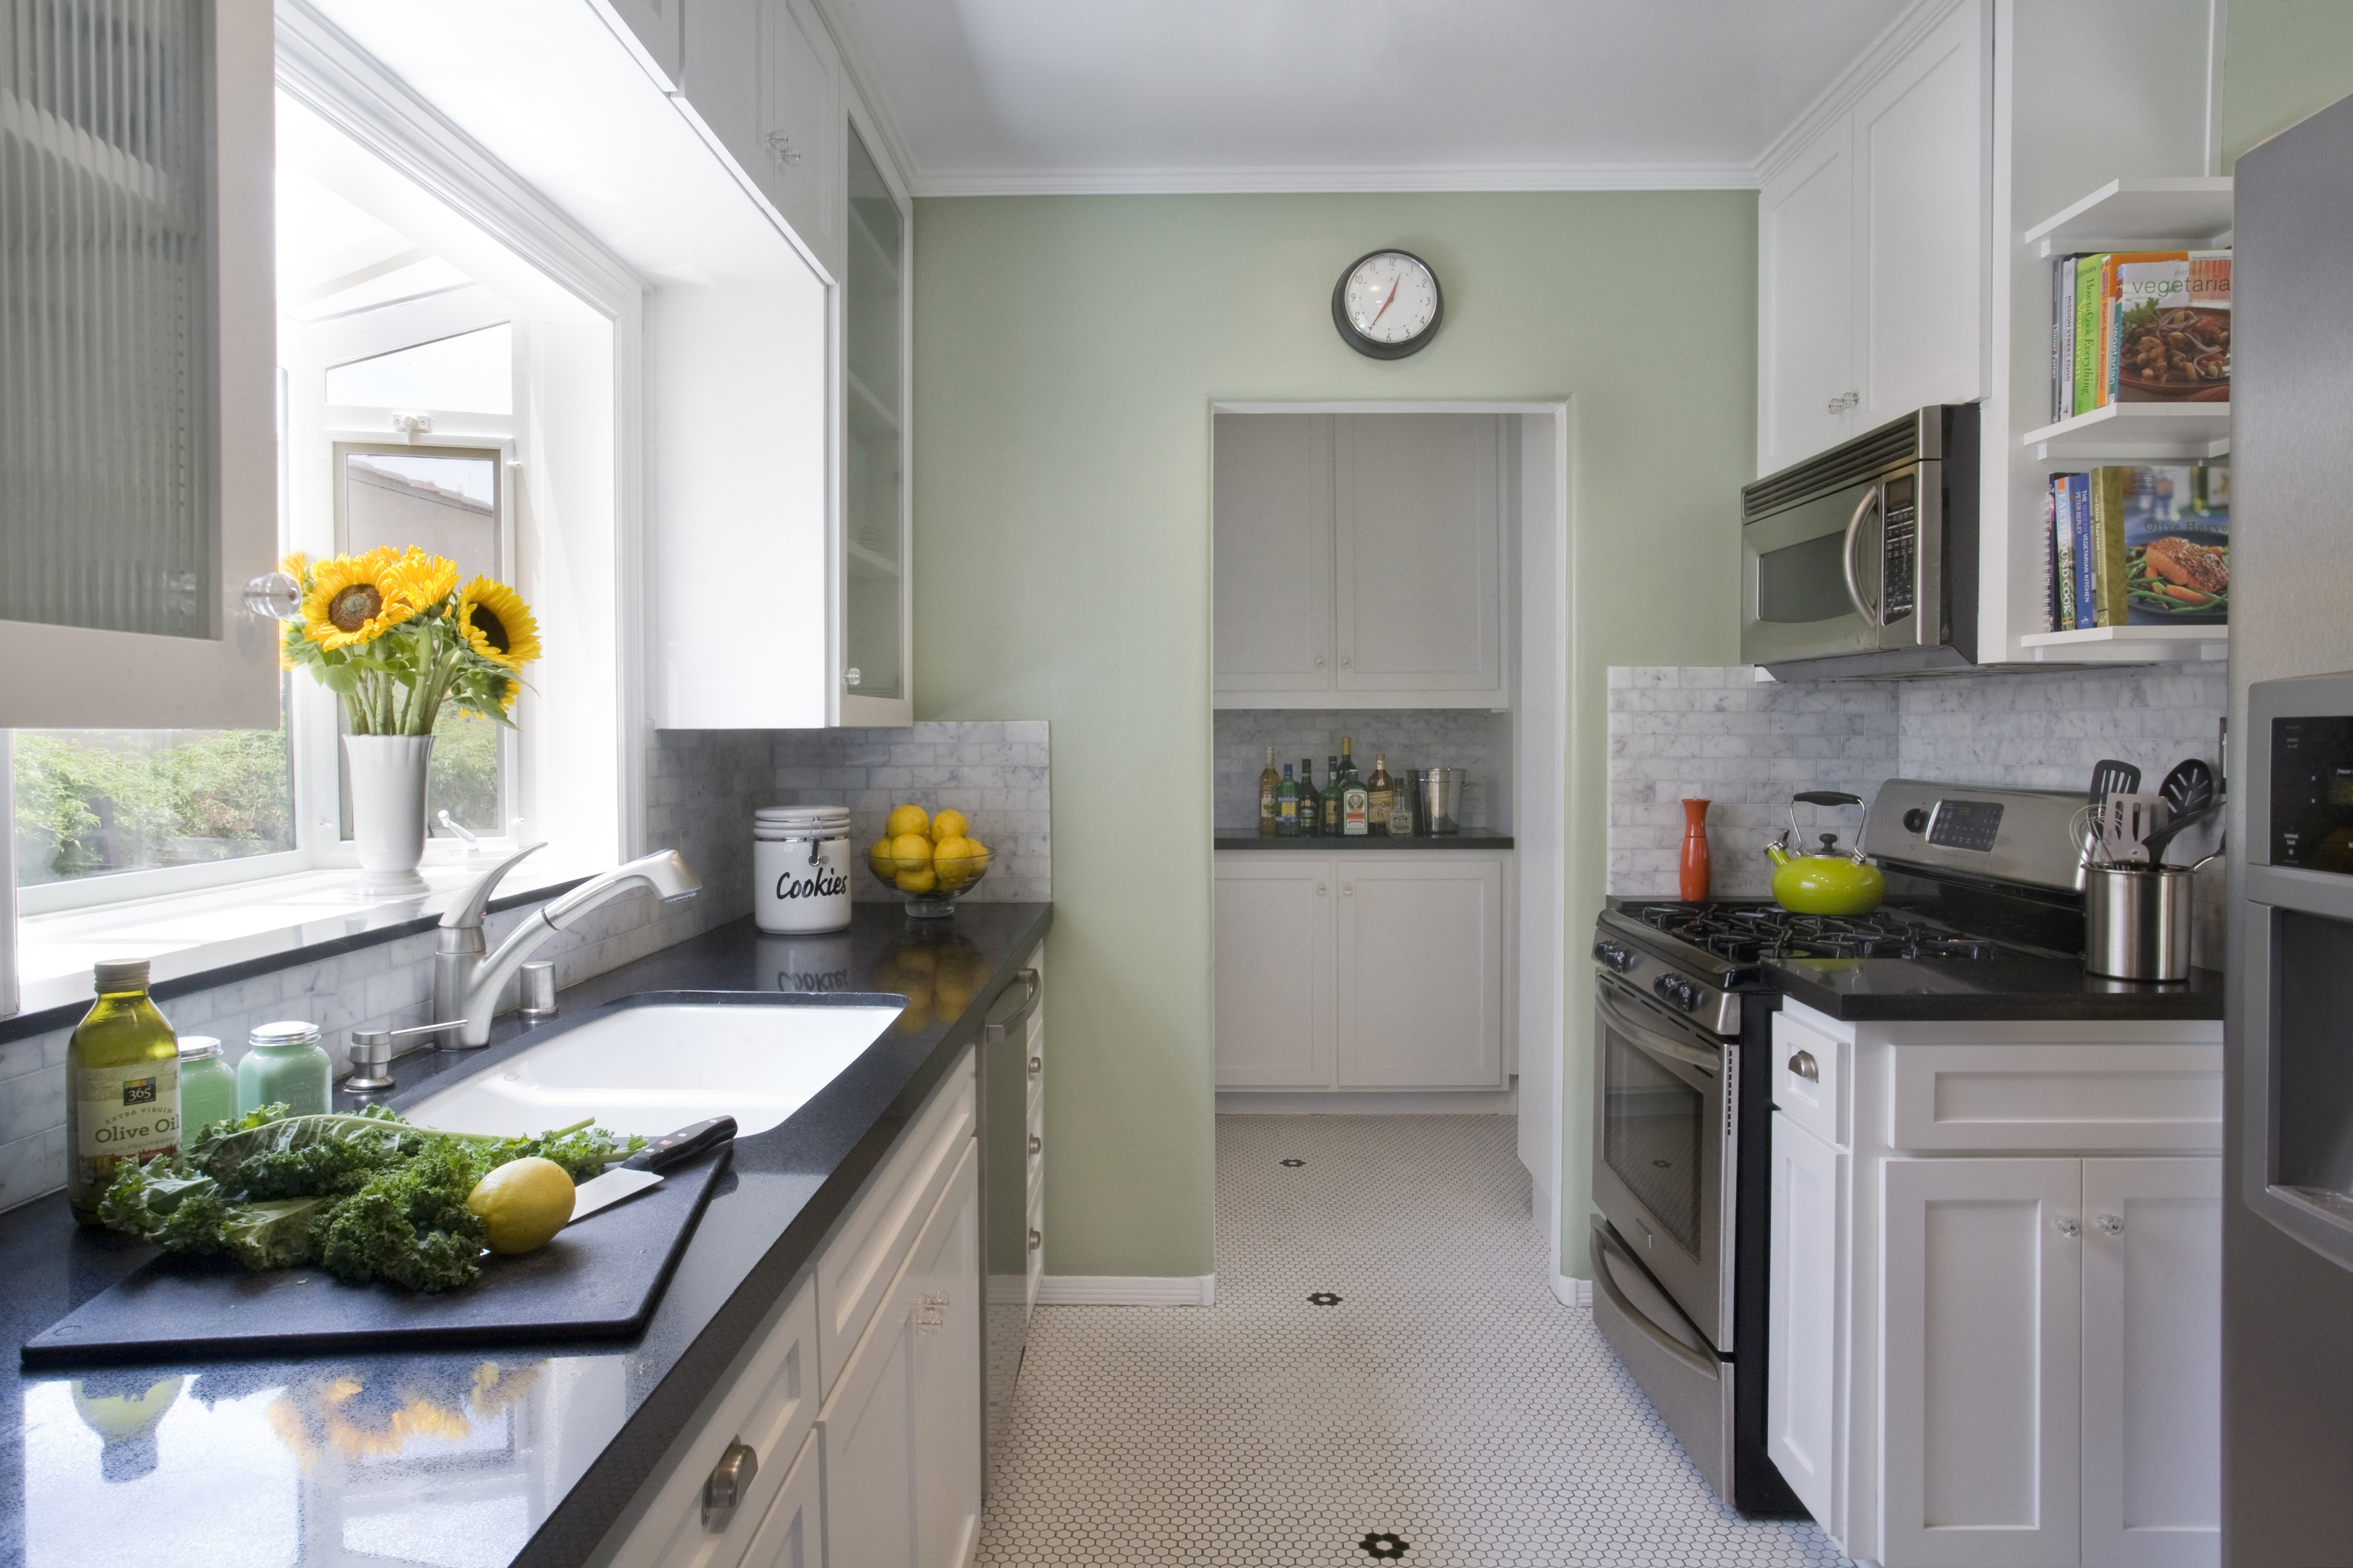 30'S Style Kitchen Cabinets